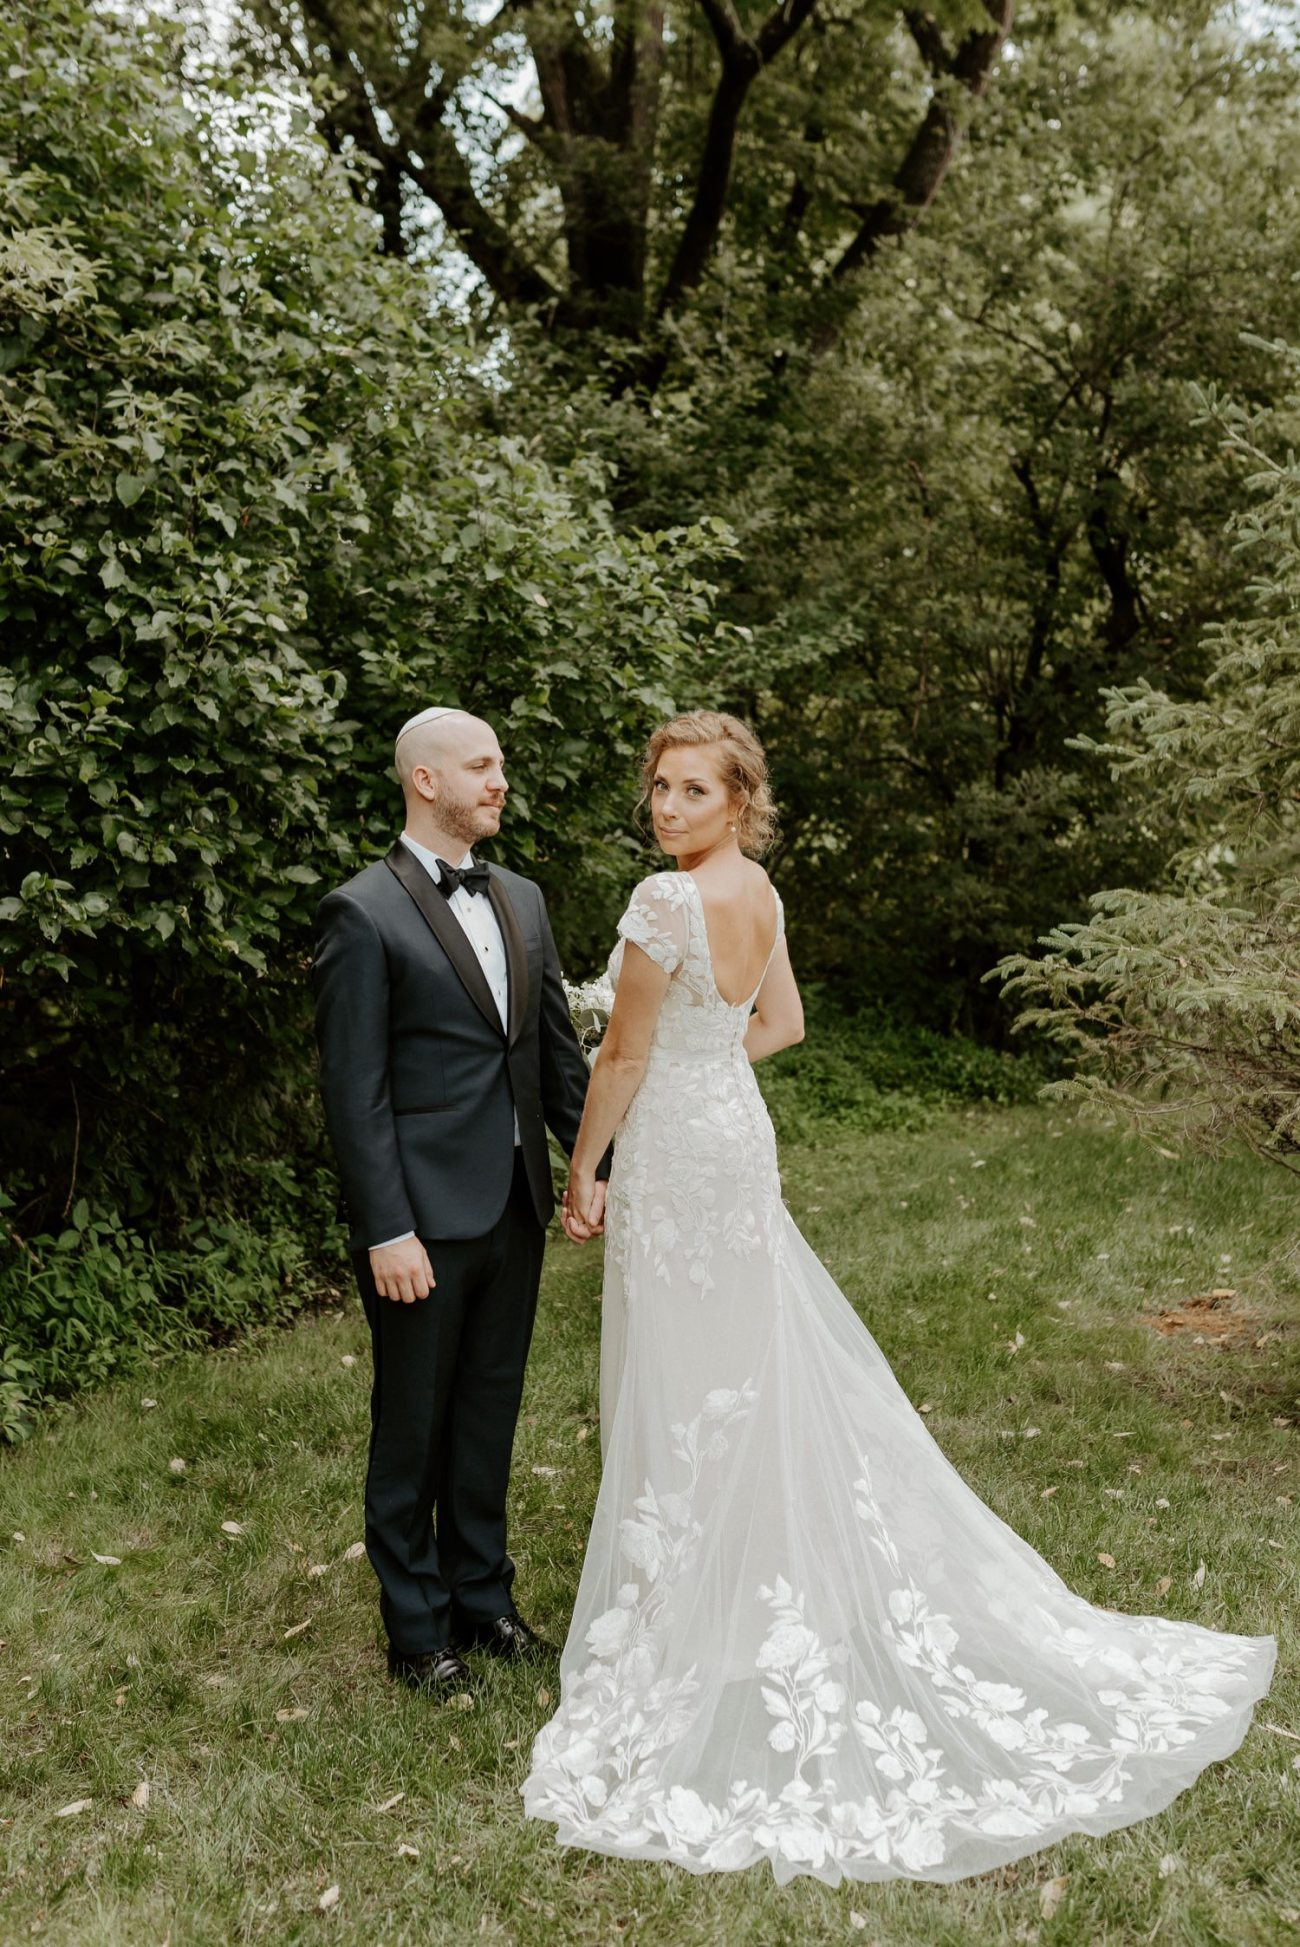 Bride and Groom at Jacks Barn Oxford New Jersey Wedding Venue. New Jersey Wedding Photographer NJ Wedding Venue Rustic Barn Wedding Anais Possamai Photography 018